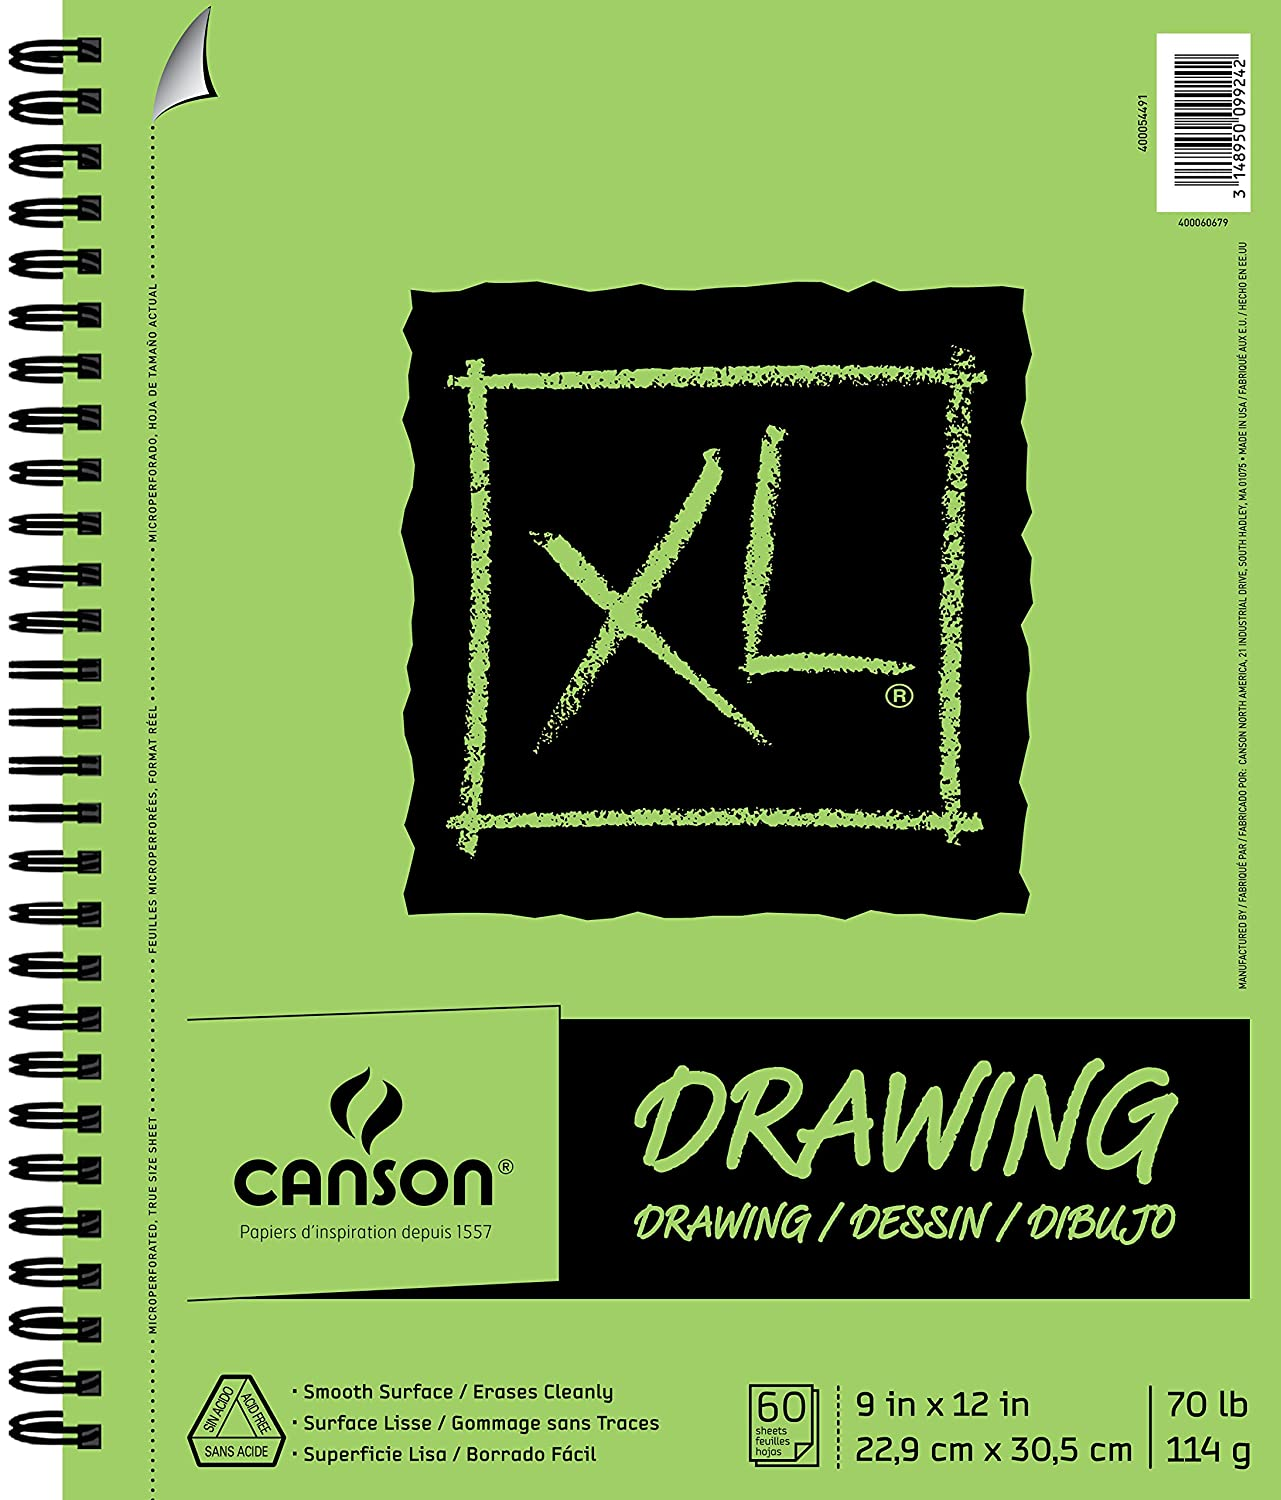 CANSON XL Series Drawing Canson Inc 400054491